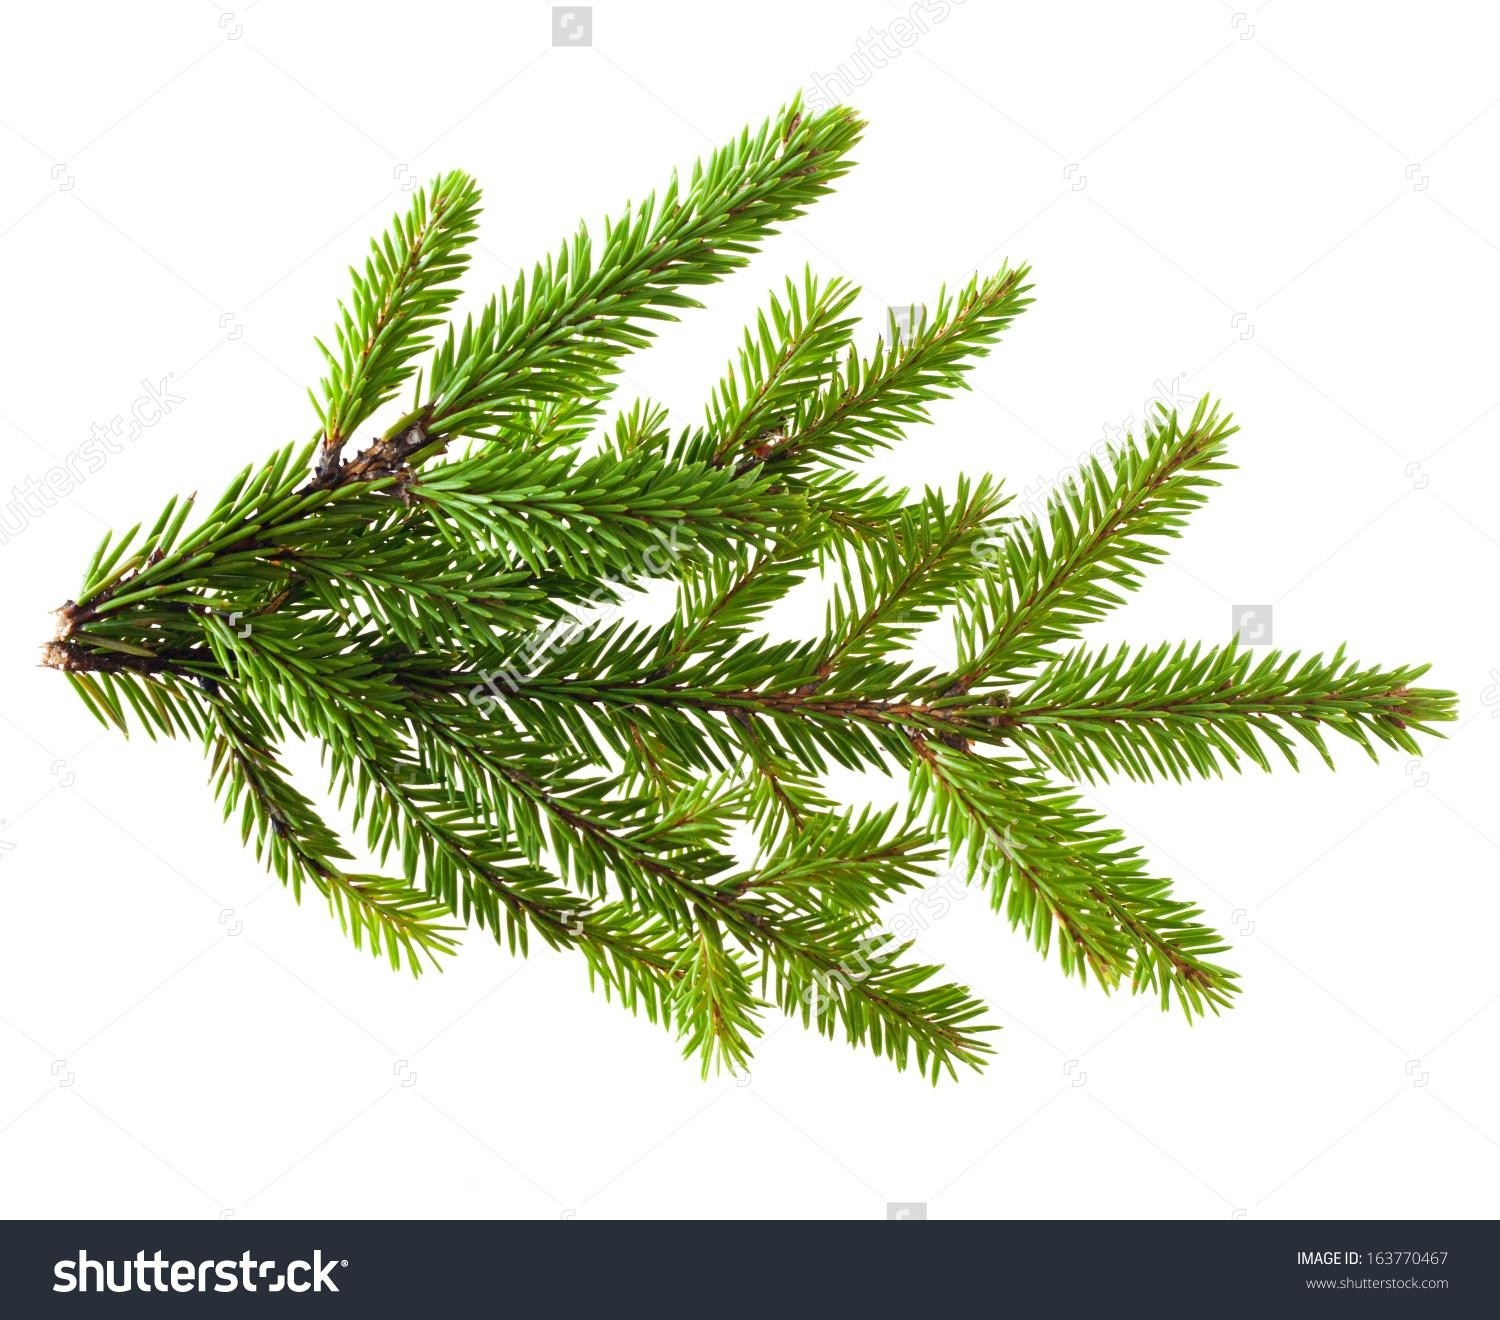 Pine Tree Branch Texture | Simple Living Tree in the World Places